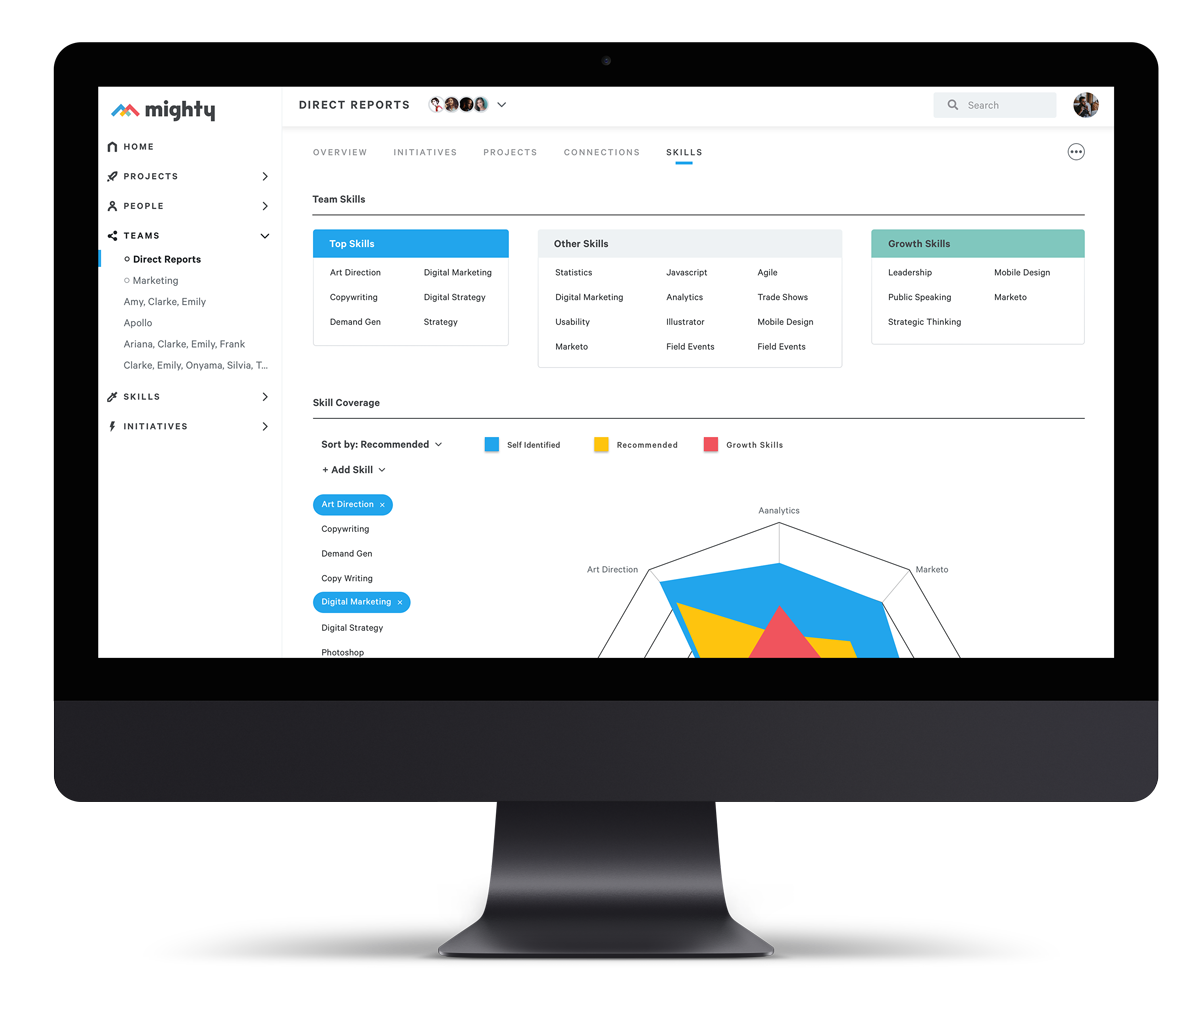 The modern Work Experience Platform - that connects work, performance, people, and skills.